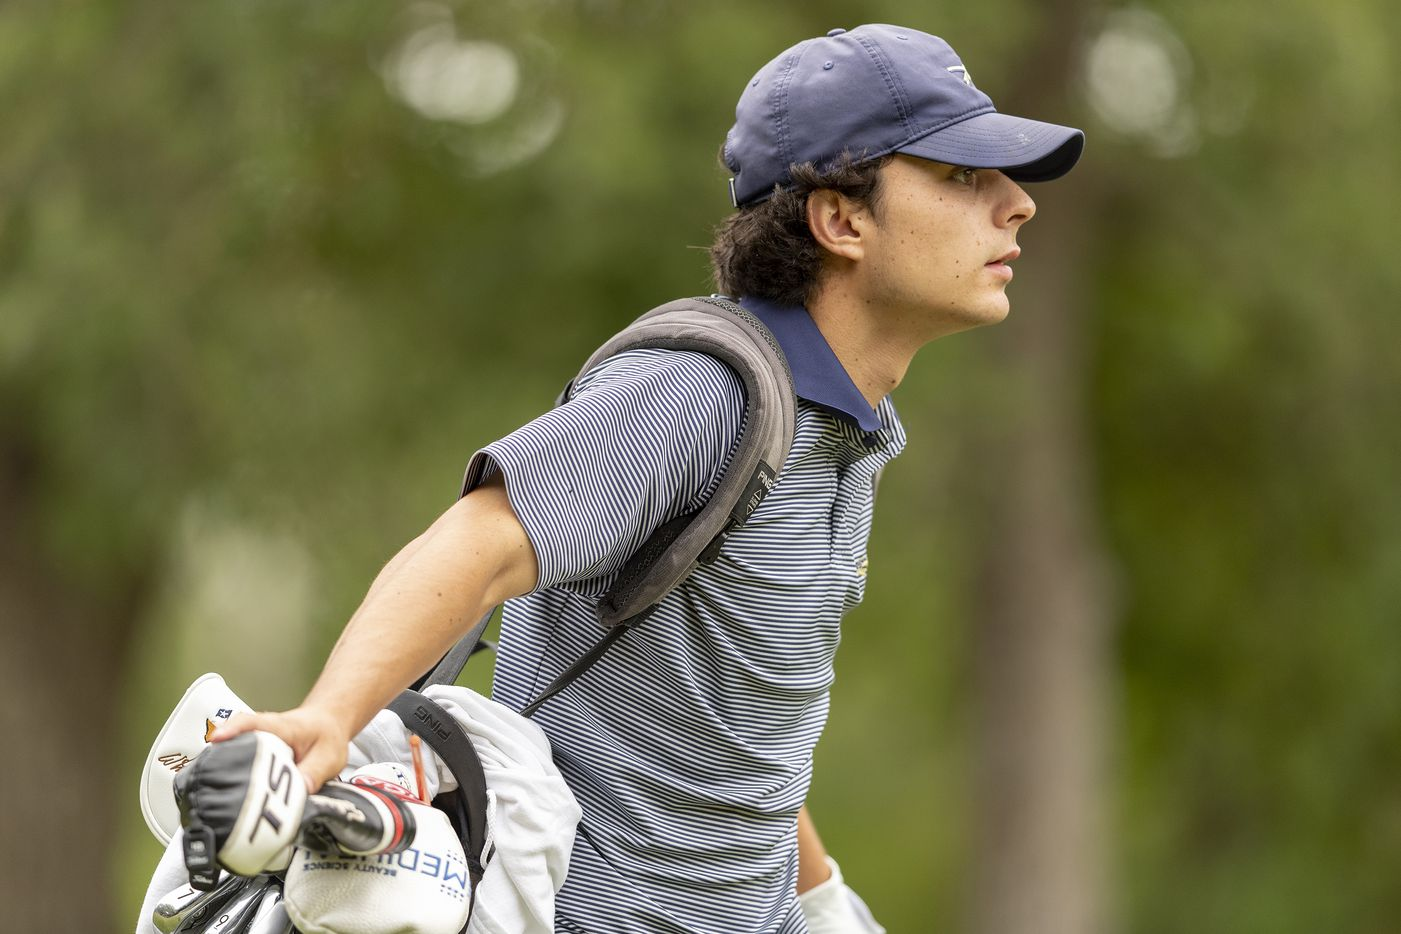 KellerÕs Jackson Naeger walks to his ball on the 1st hole during the final round of the UIL Class 6A boys golf tournament in Georgetown, Tuesday, May 18, 2021. (Stephen Spillman/Special Contributor)